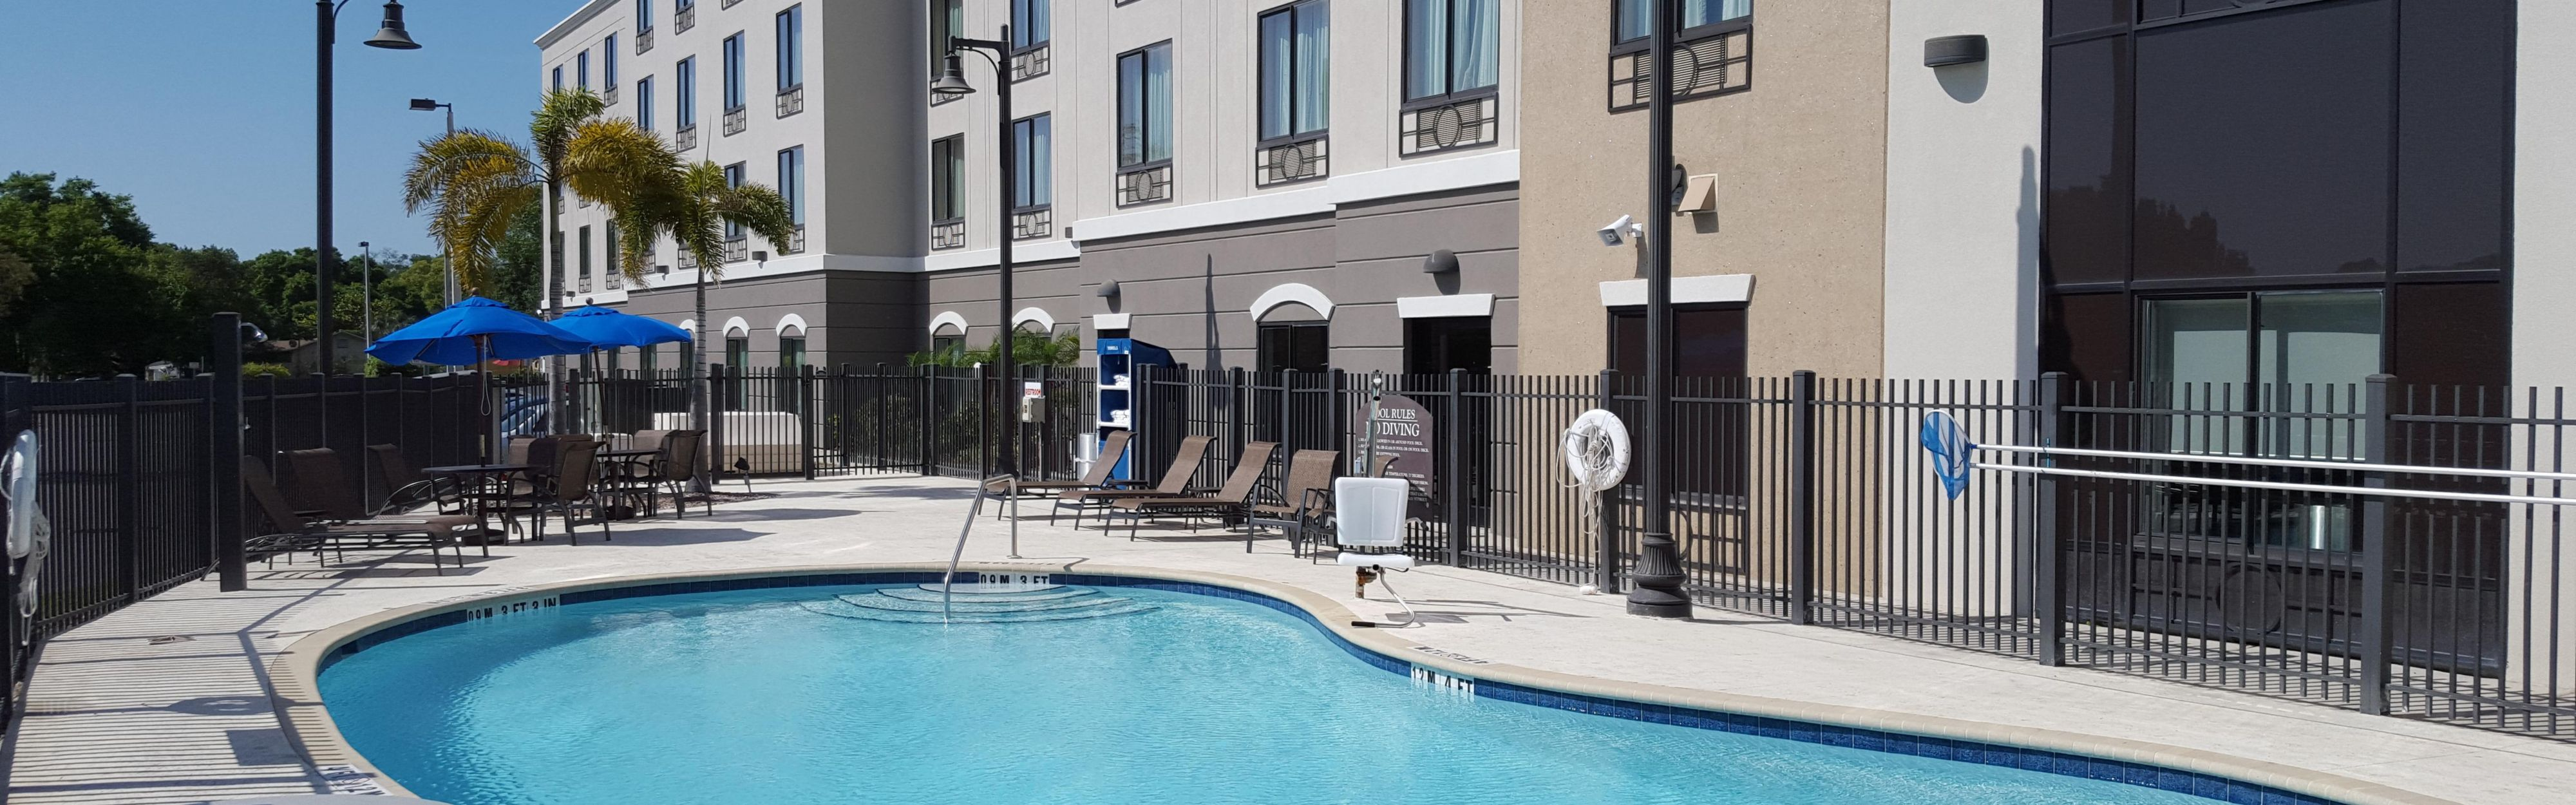 Holiday Inn Express Amp Suites Tampa Usf Busch Gardens